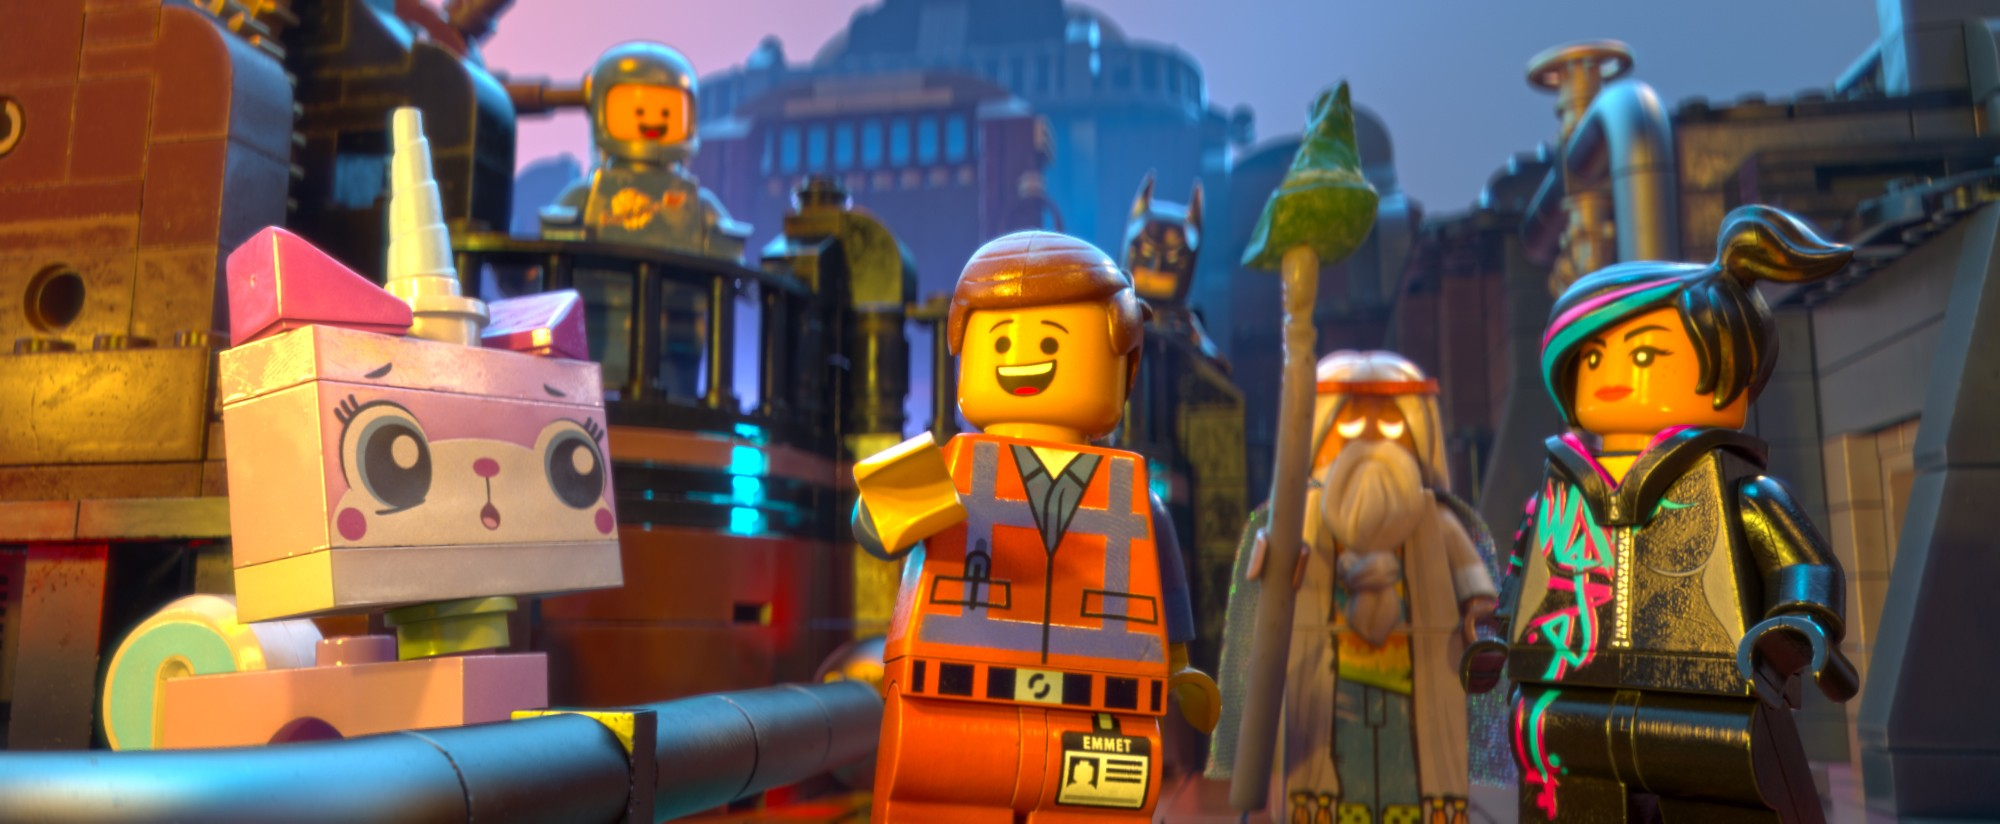 ... The Lego Movie ...